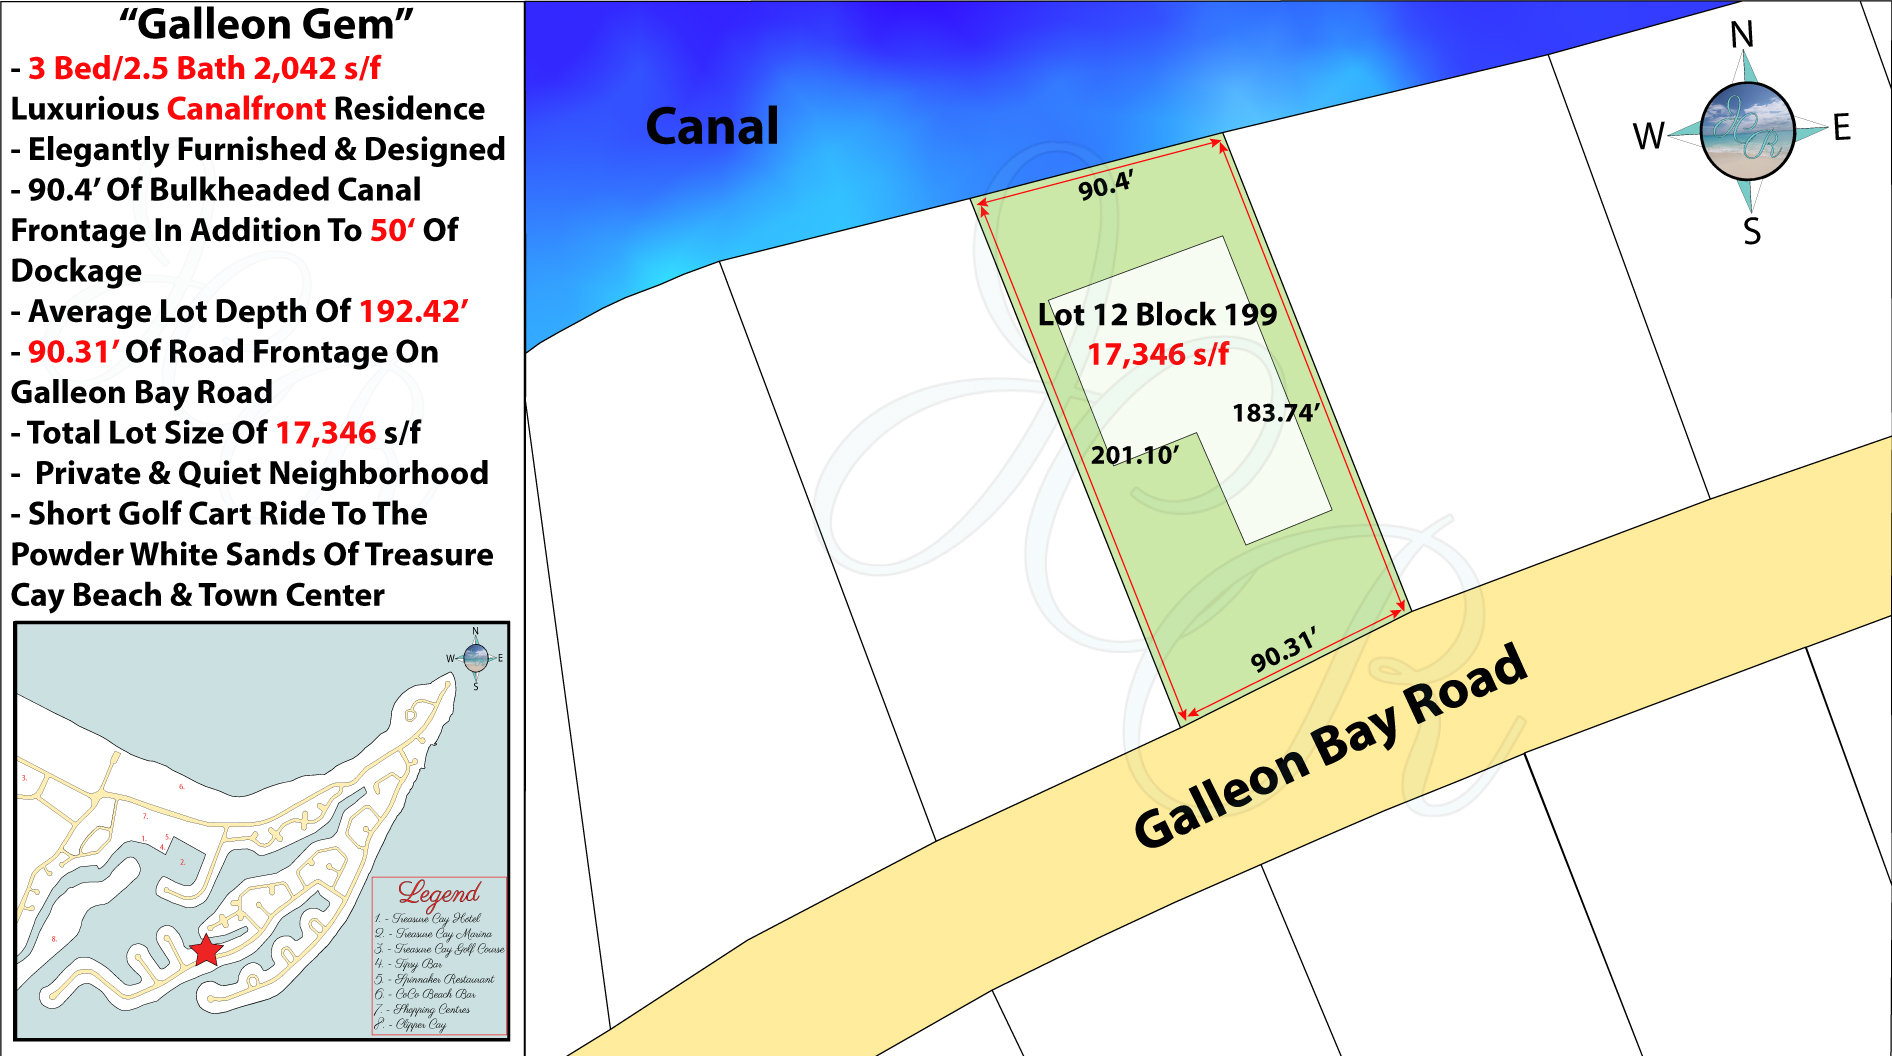 Galleon Gem (Lot 12 Block 199) Plot Plan John Cash Realty